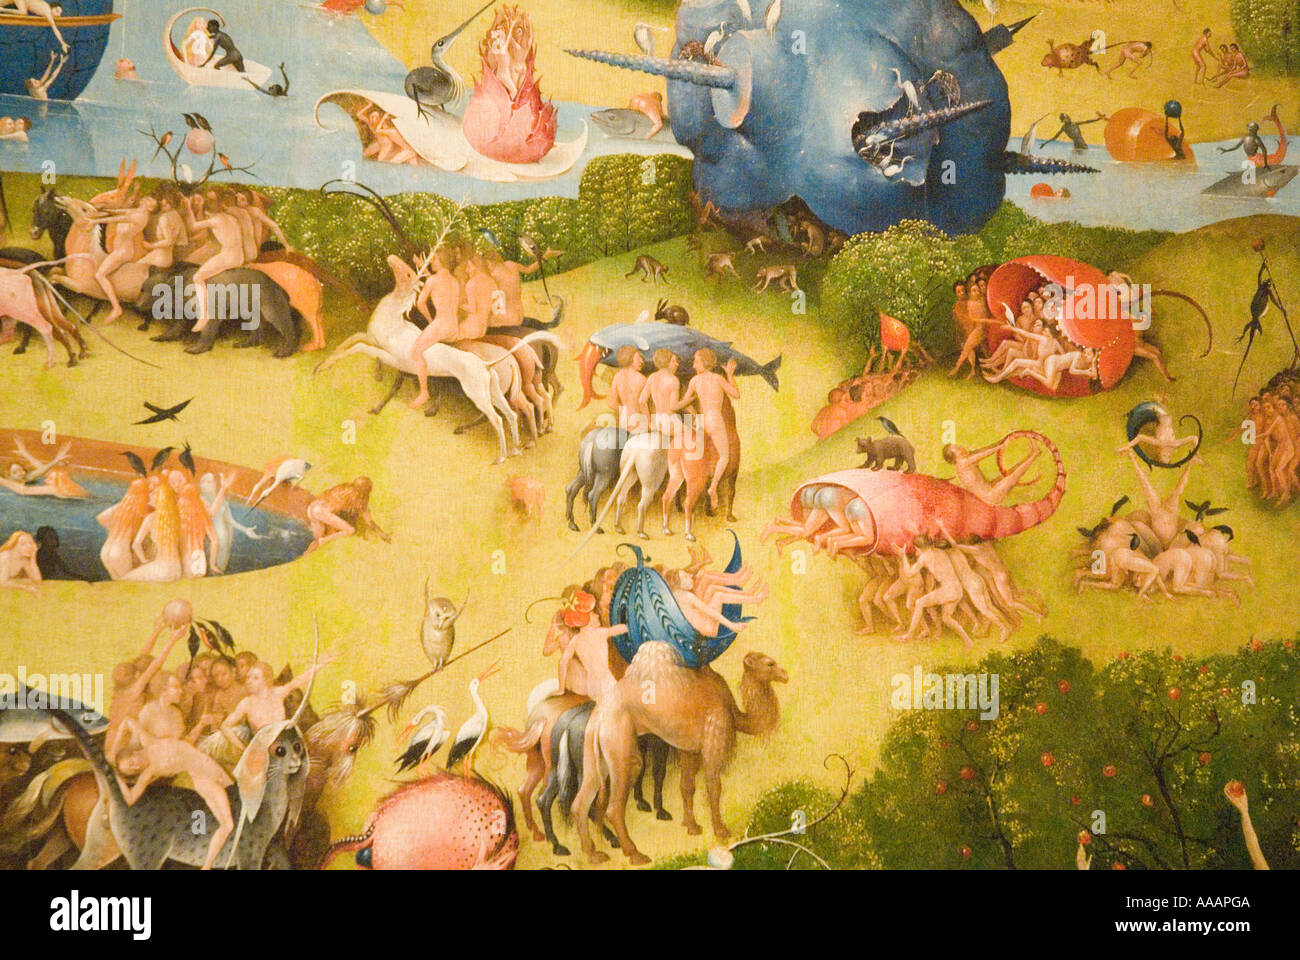 Garden Of Earthly Delights Painting By Hieronymus Bosch Stock Photo Royalty Free Image 7182985